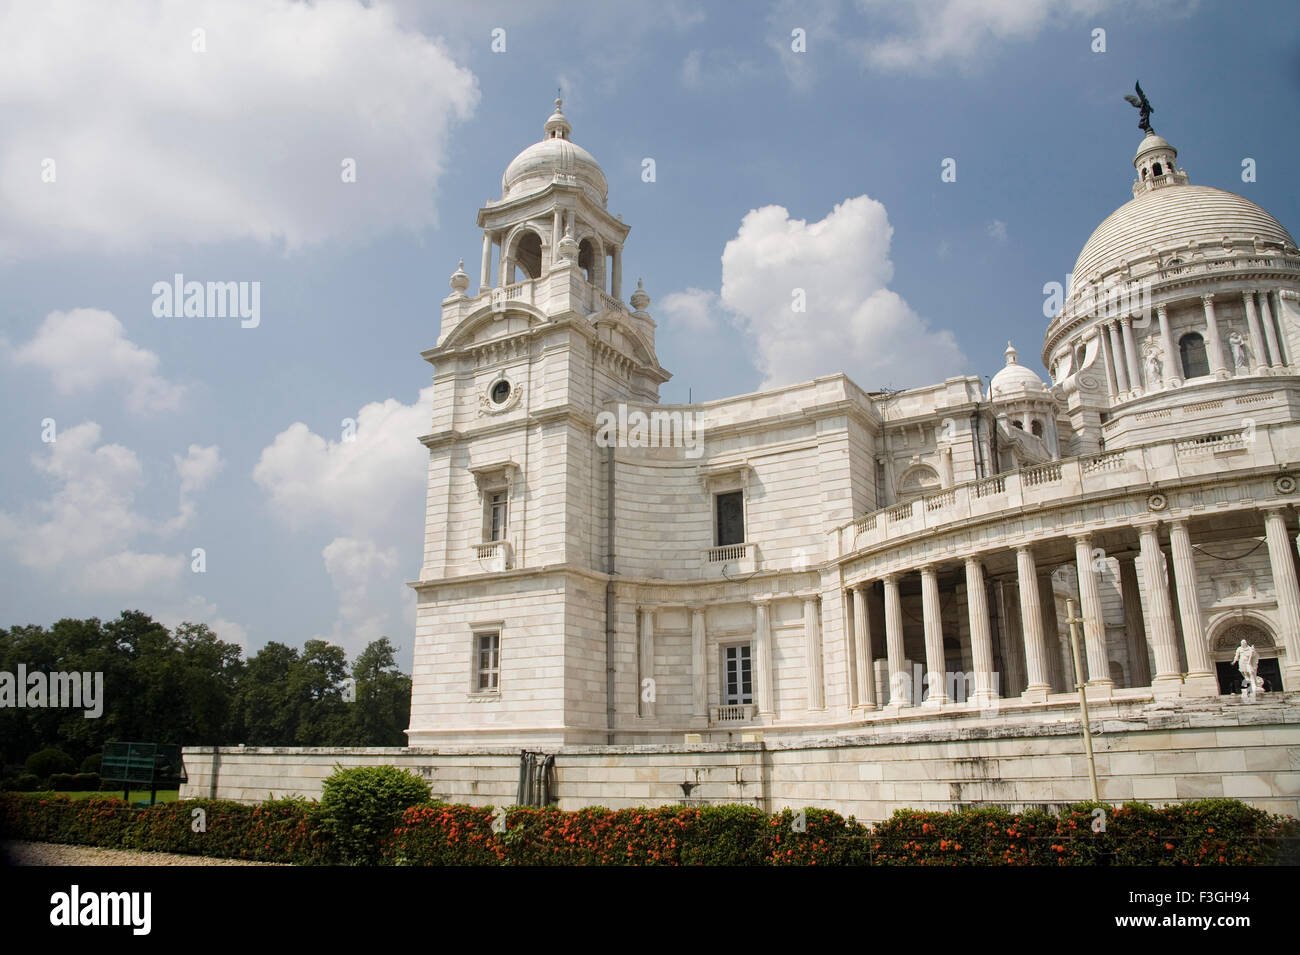 Victoria memorial Impressive reminder of Raj white marble museum house ; Calcutta now Kolkata ; West Bengal ; India - Stock Image